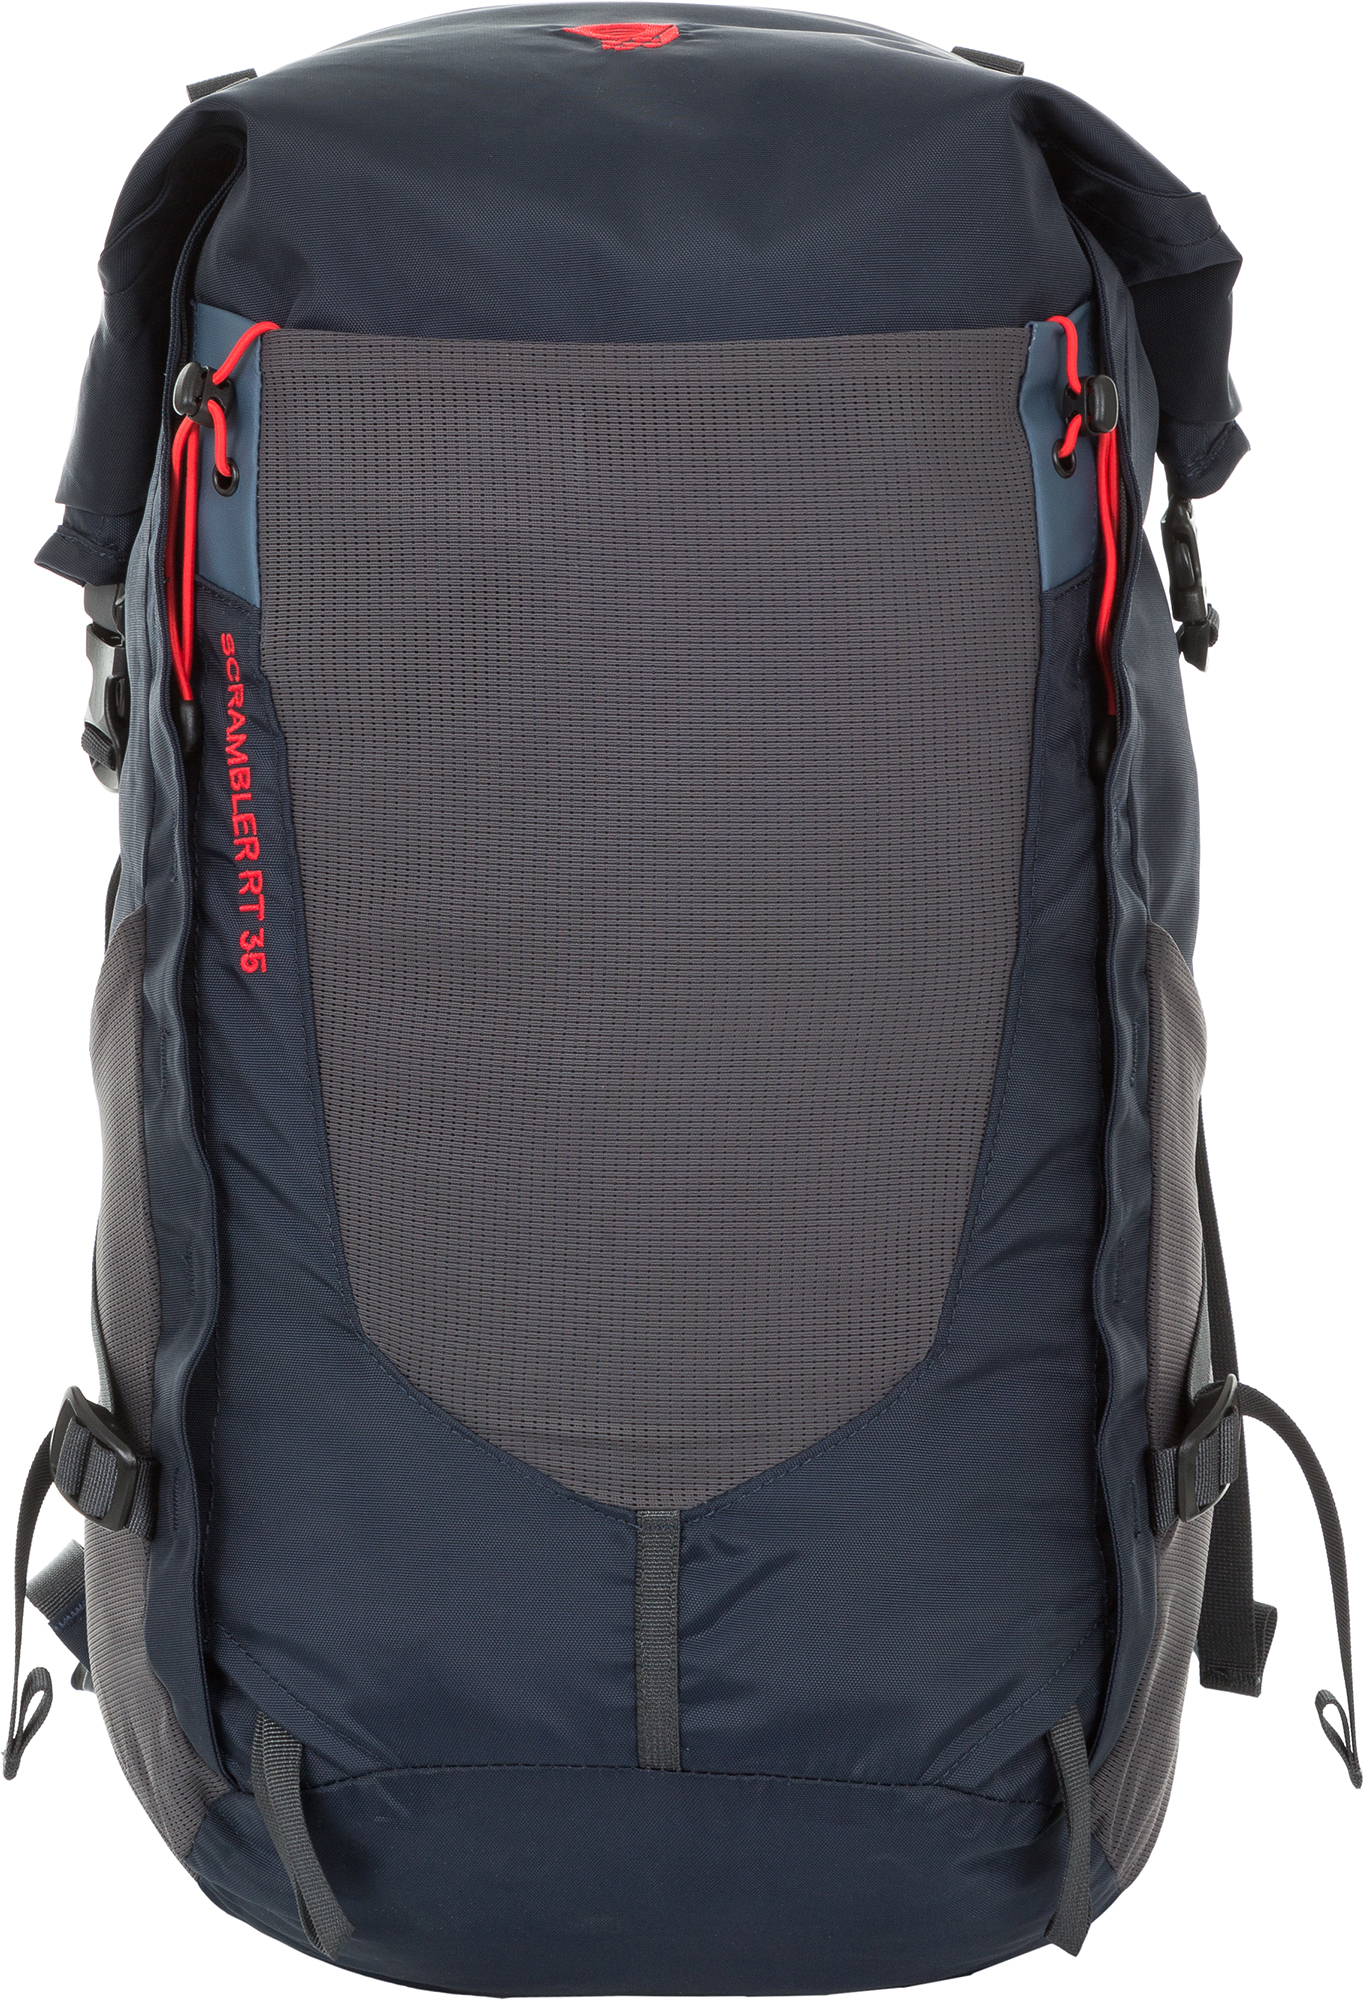 Mountain Hardwear Mountain Hardwear Scrambler Rt 35 Outdry, размер Без размера